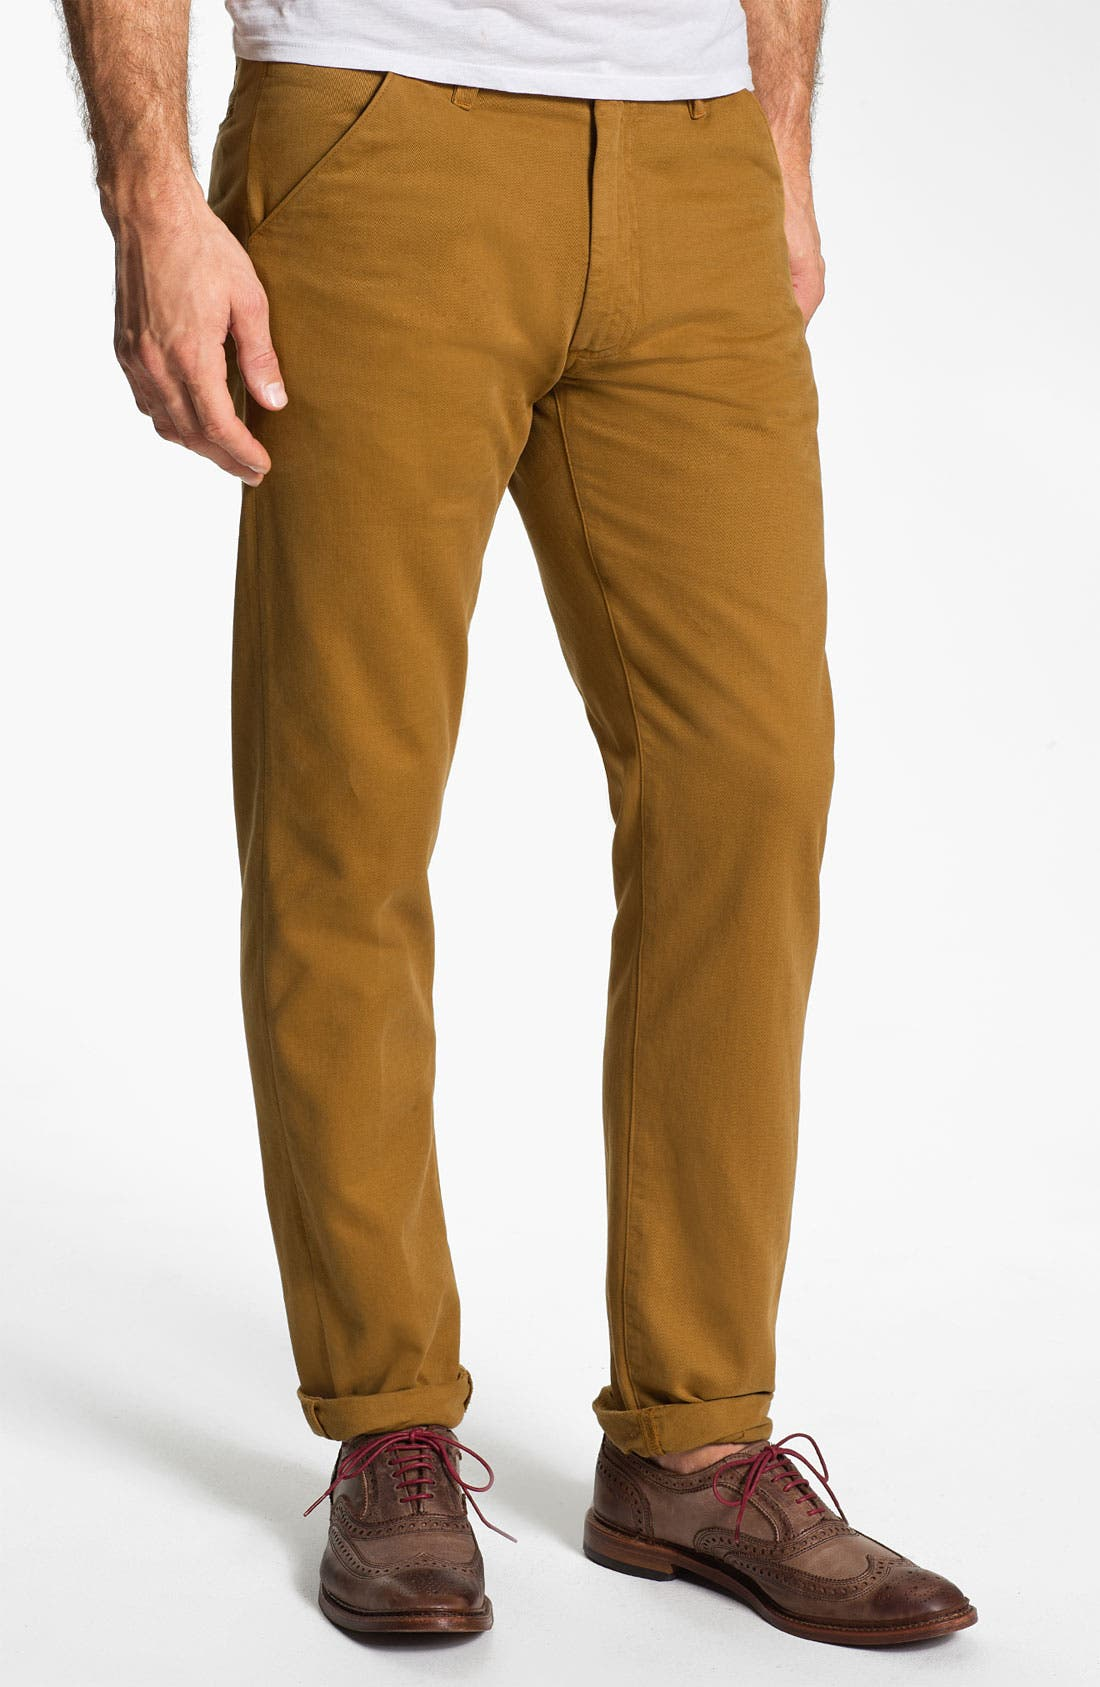 Alternate Image 1 Selected - Levi's® Made & Crafted™ 'Drill' Cotton & Linen Chinos